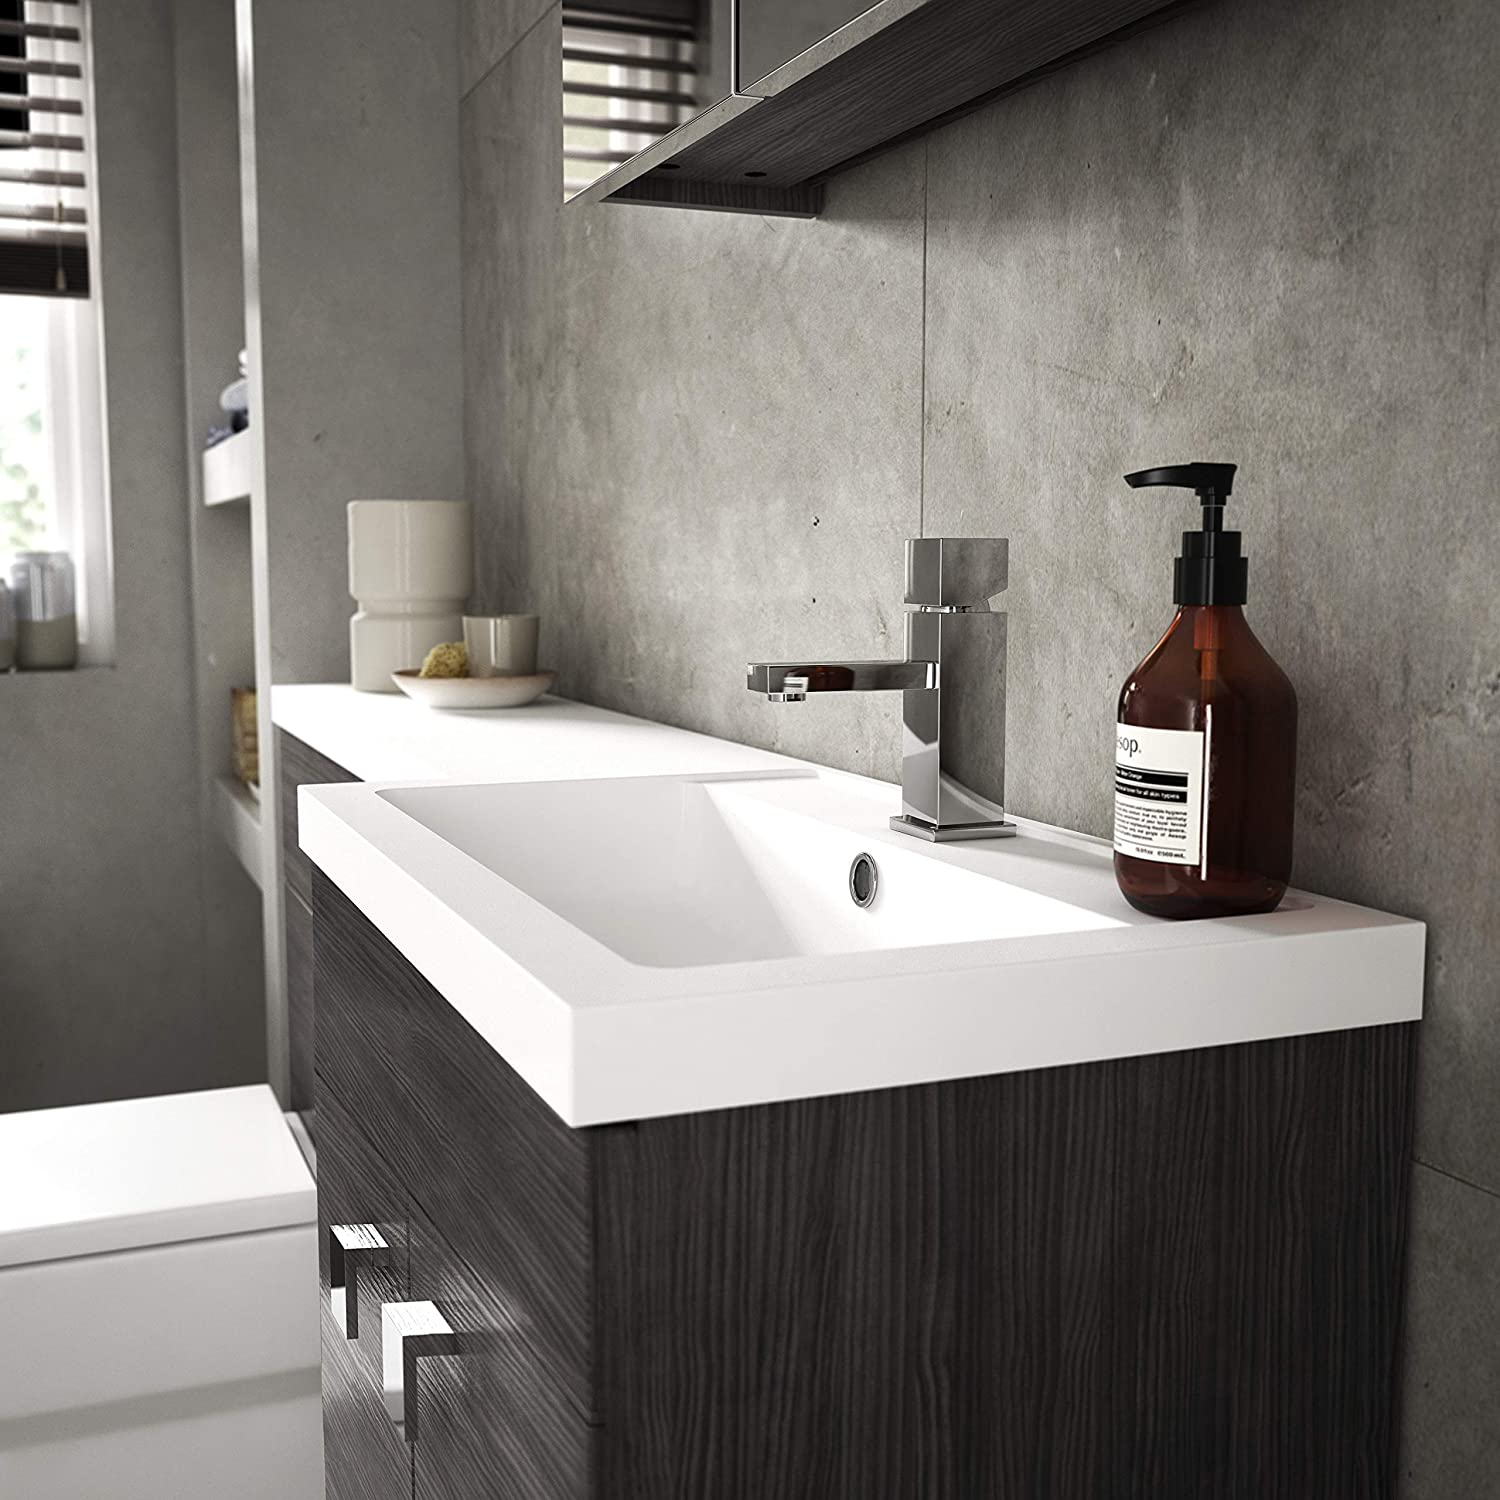 Stone Nuie Off516 Ofg516 Athena ǀ Modern Bathroom Wall Hung Contemporary Single Door Mirror Storage Cabinet Brown Grey Avola 450mm Cabinets Mirror Cabinets